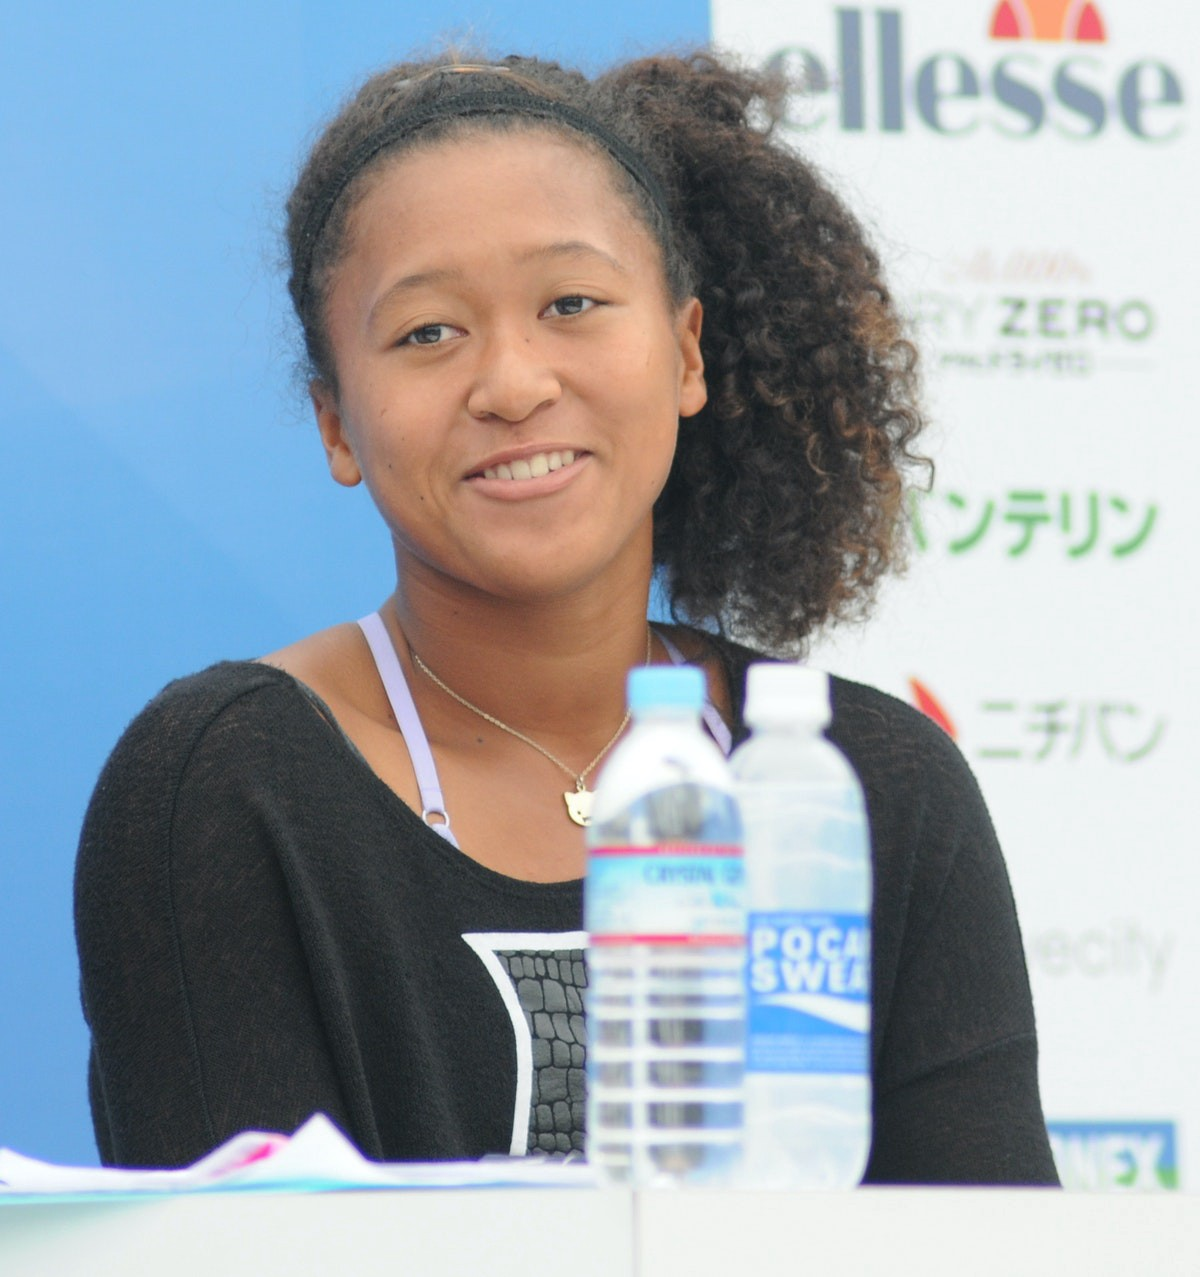 photo of tennis player Naomi Osaka sitting at a table with 2 water bottles.